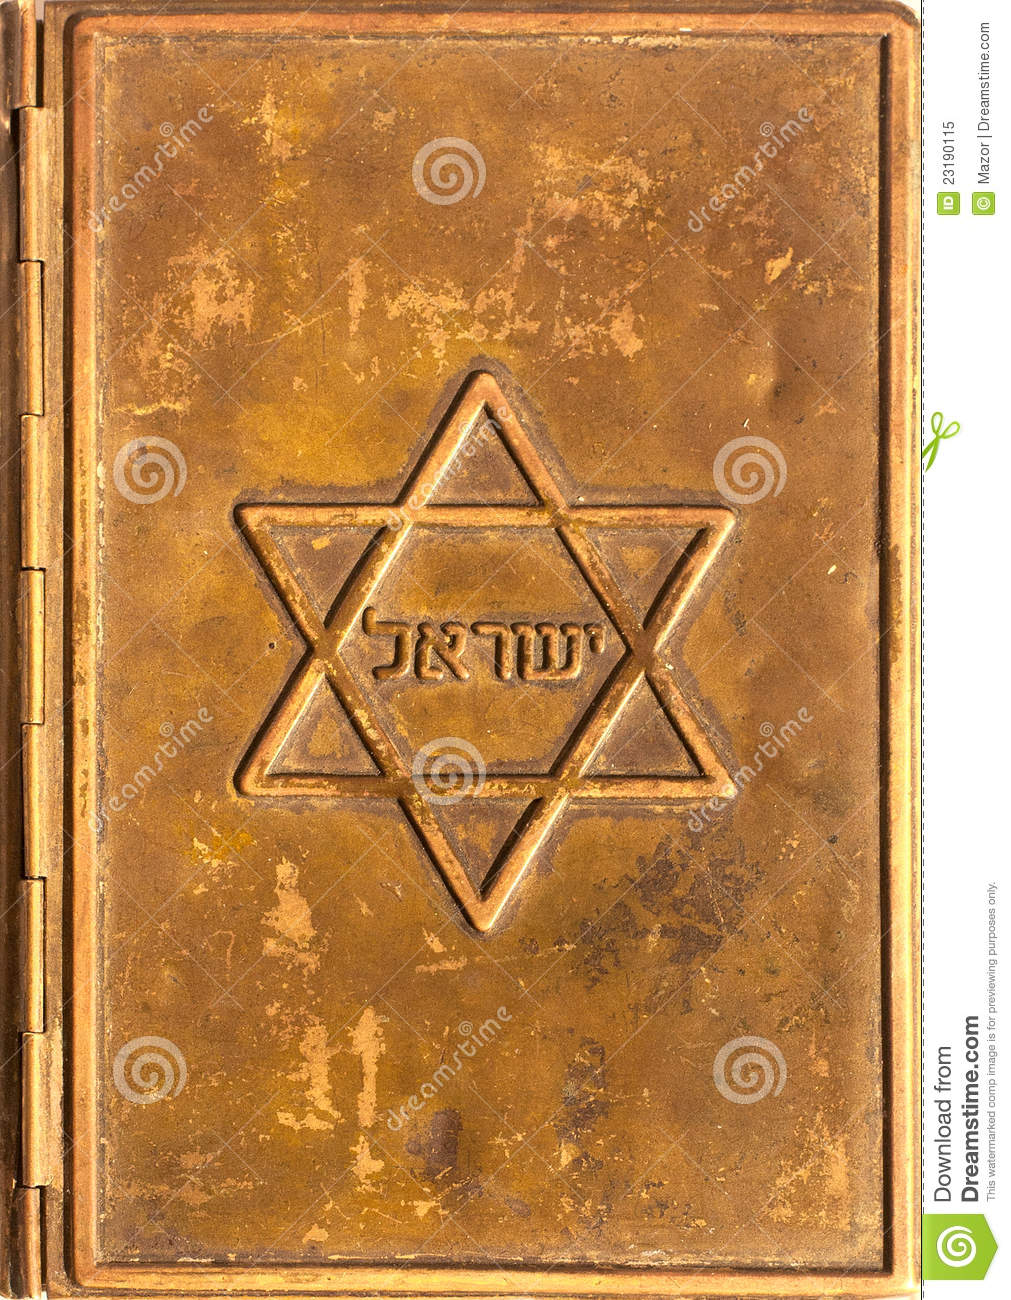 Copper Cover Of An Old Jewish Prayer Book Royalty Free Stock Photo  Image 23190115